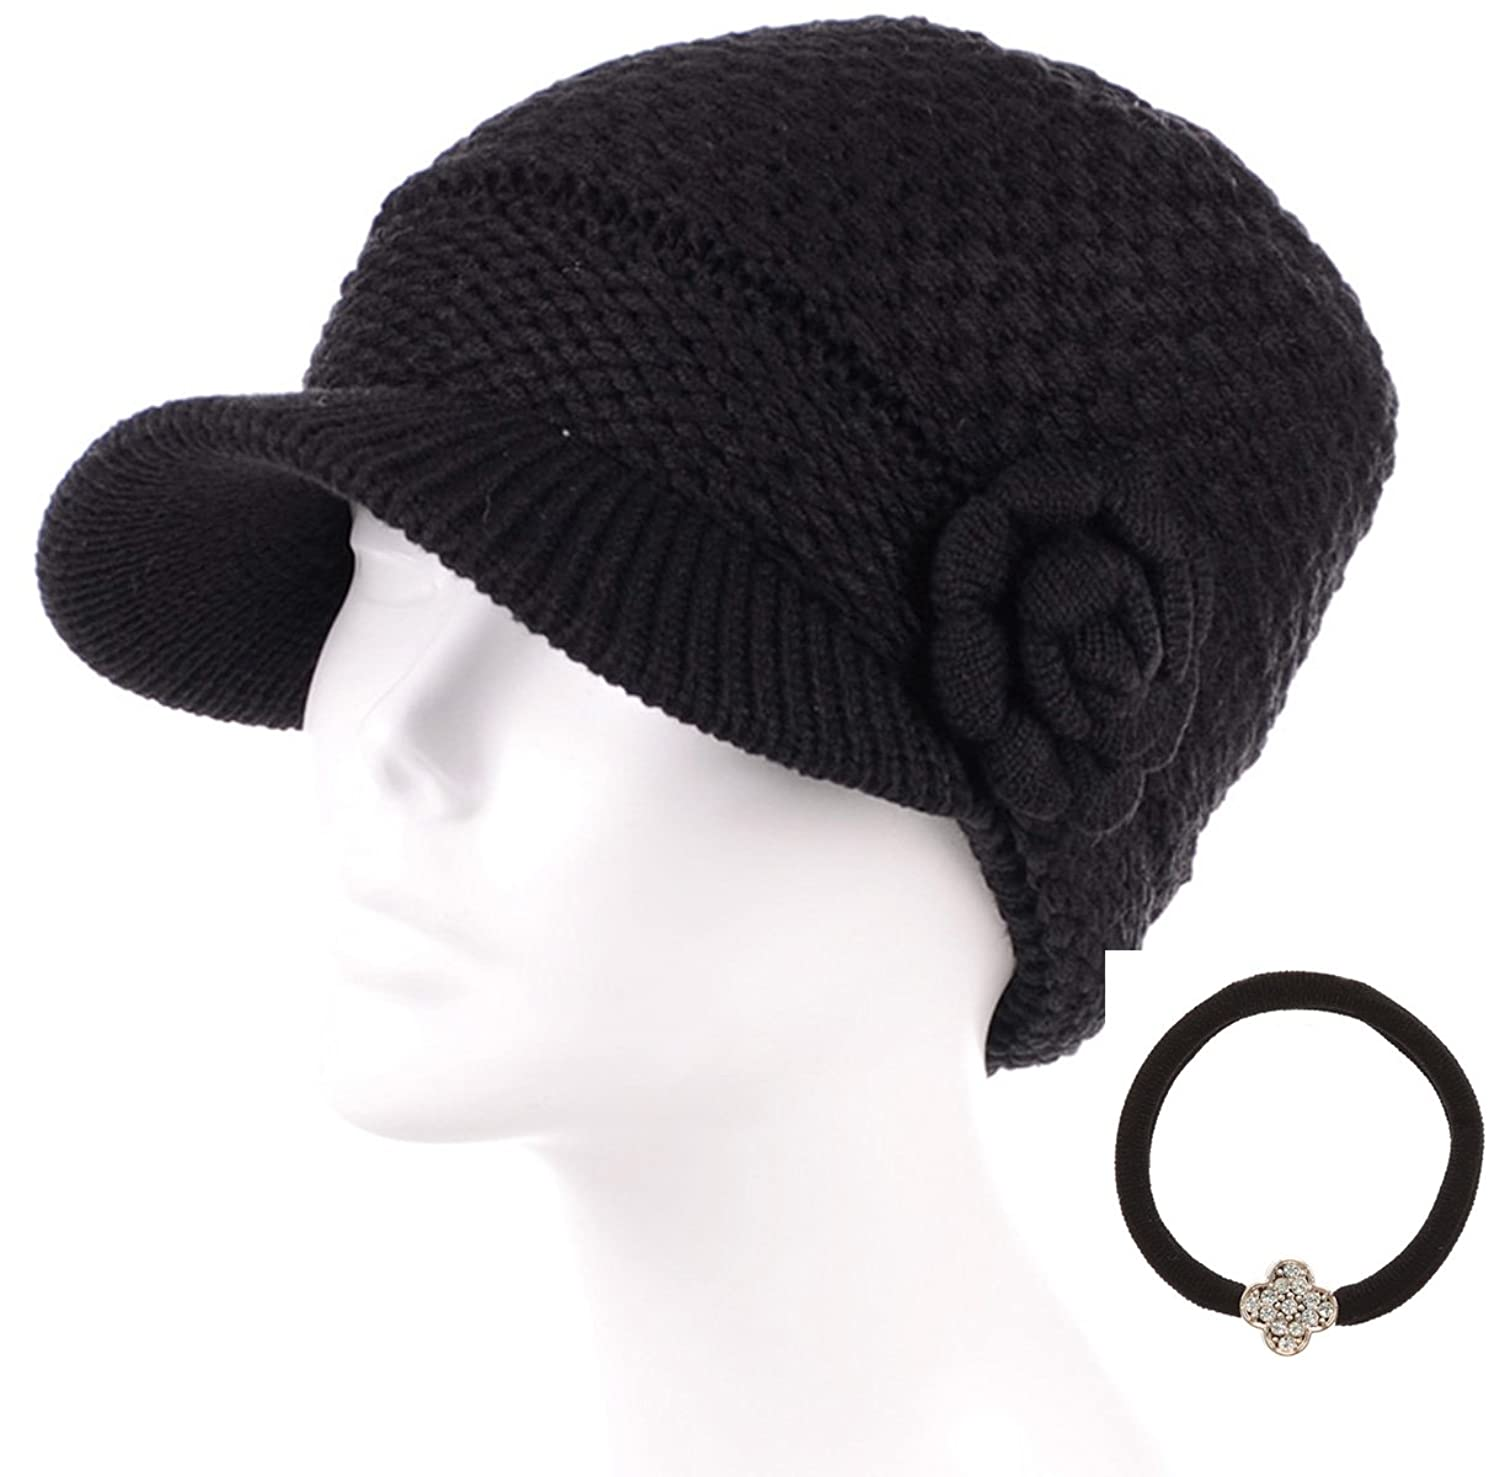 783ea0ff9 MIRMARU Women's Winter Cable Knitted Beret Visor Beanie Hat with ...